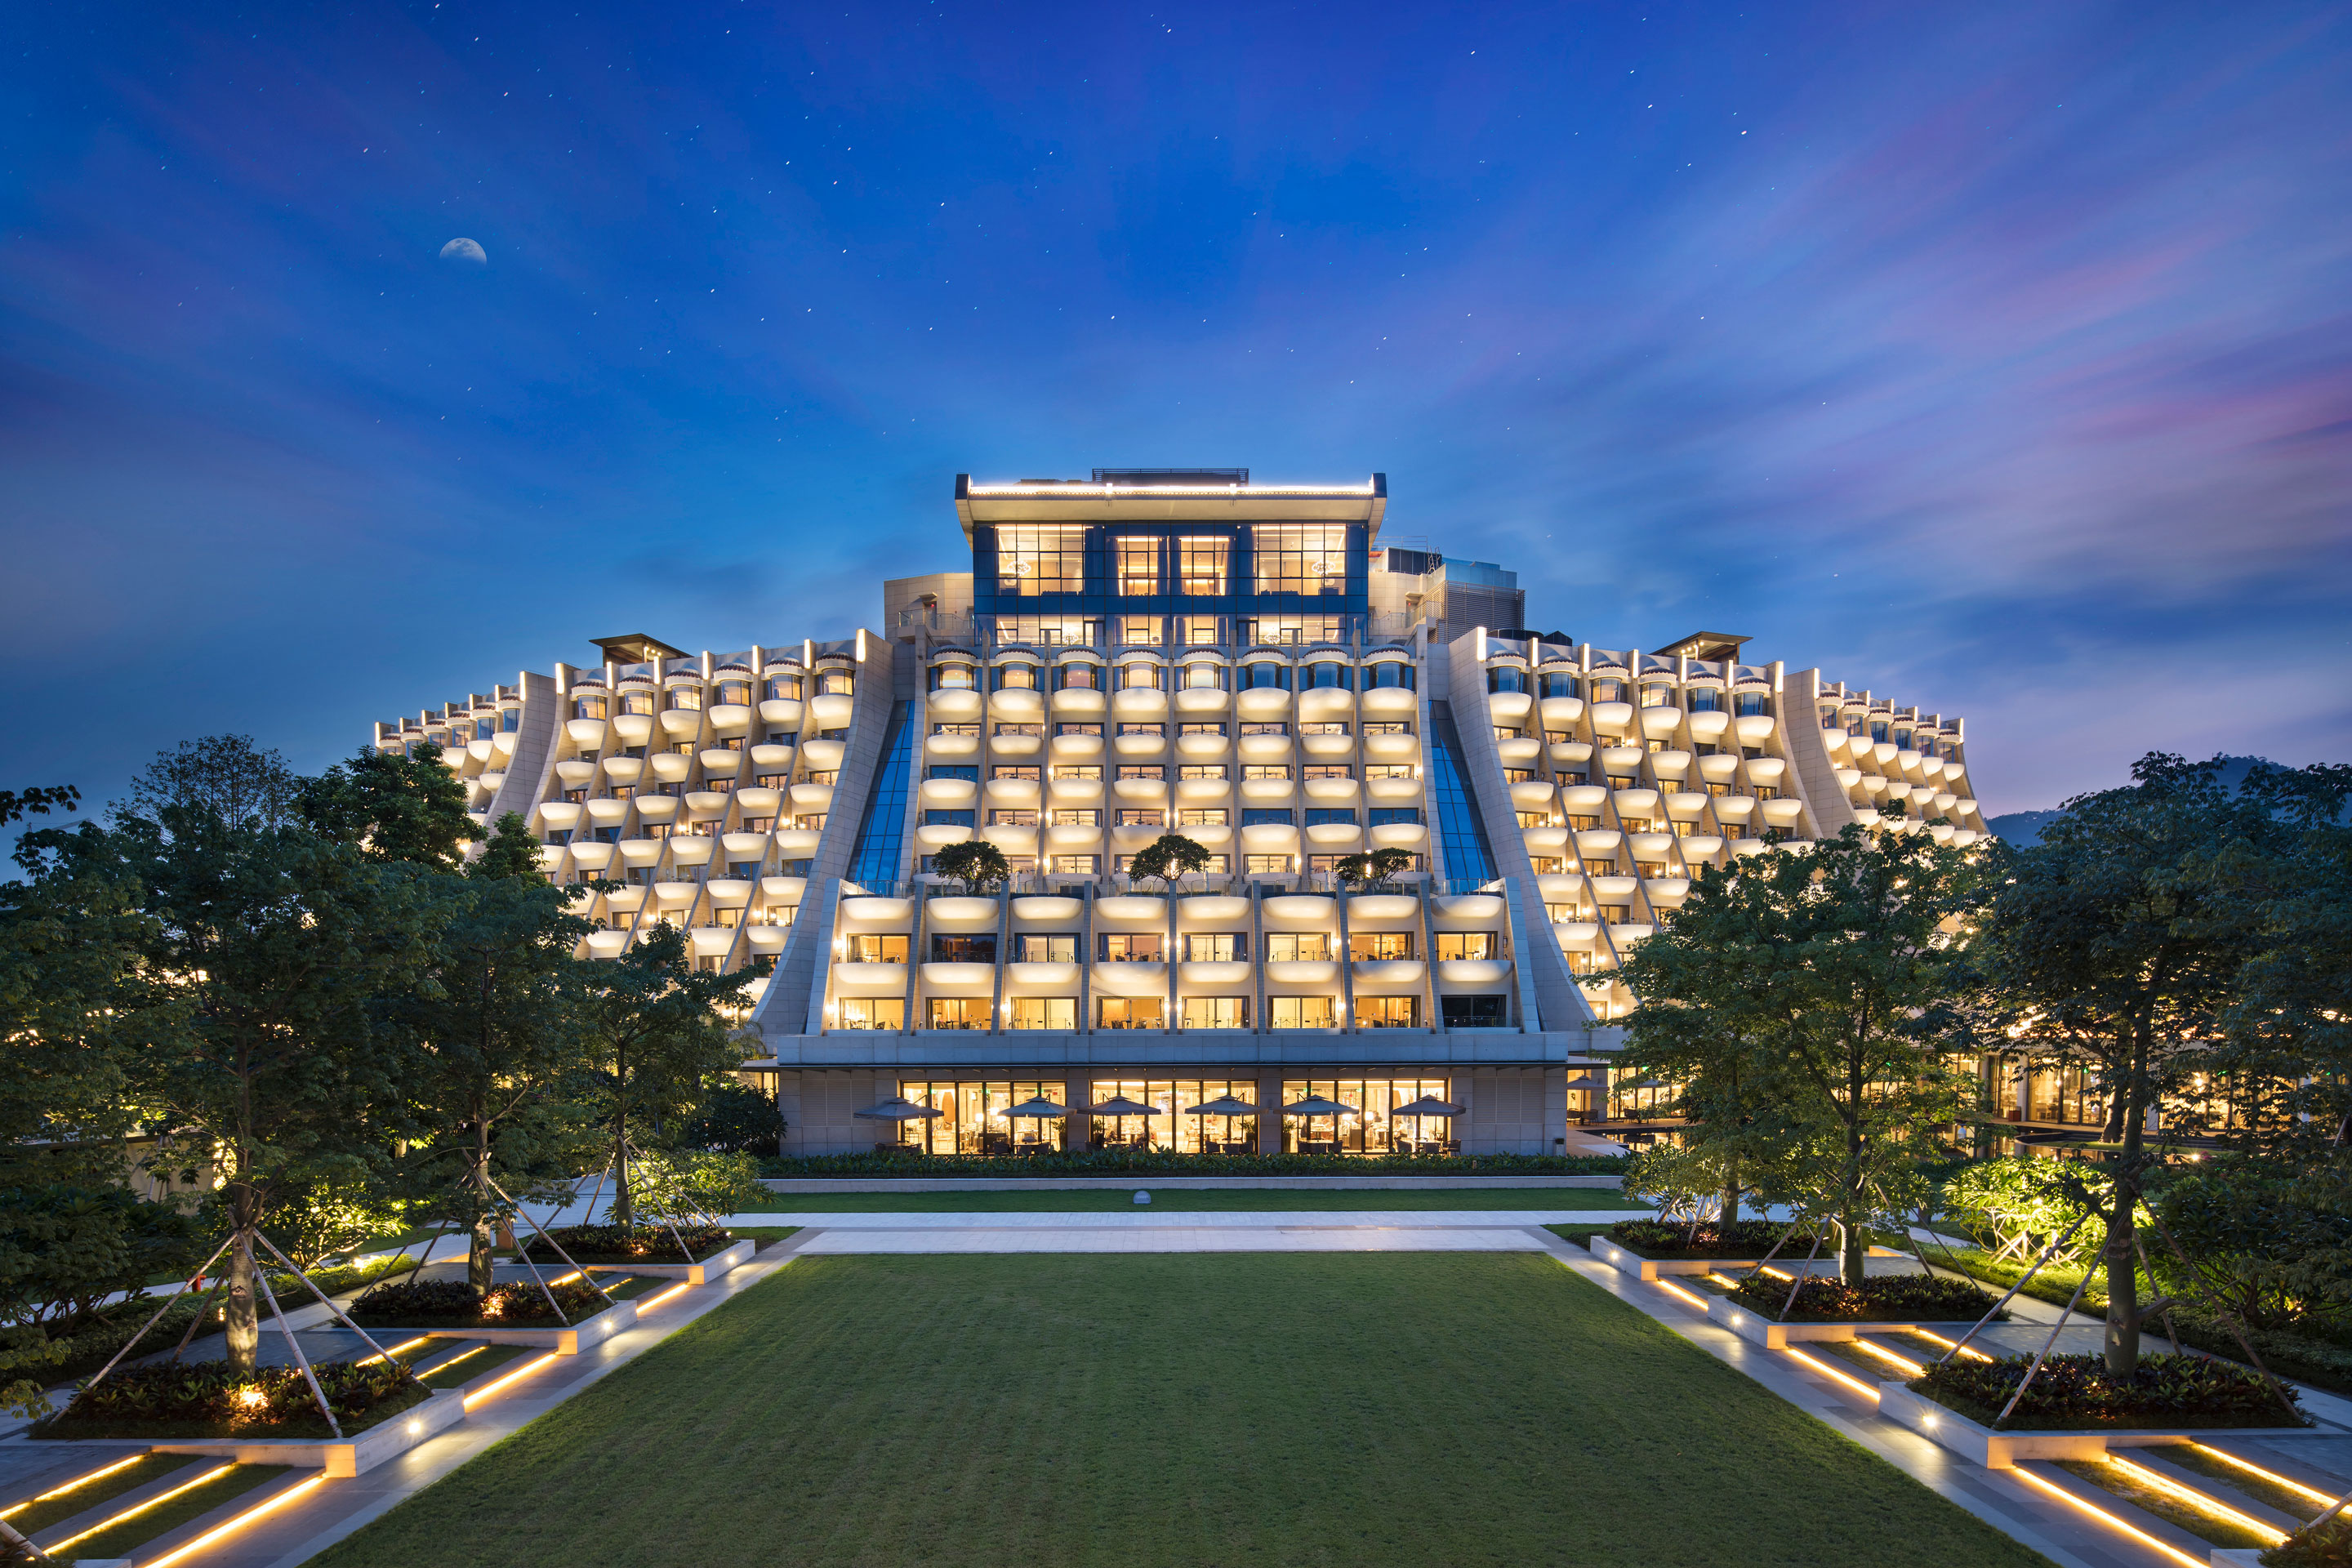 "深圳蛇口希尔顿南海酒店第三次荣膺""TTG中国旅行大奖"" Hilton Shenzhen Shekou Nanhai Wins Top International Honor for the Third Time at TTG China Travel Awards"